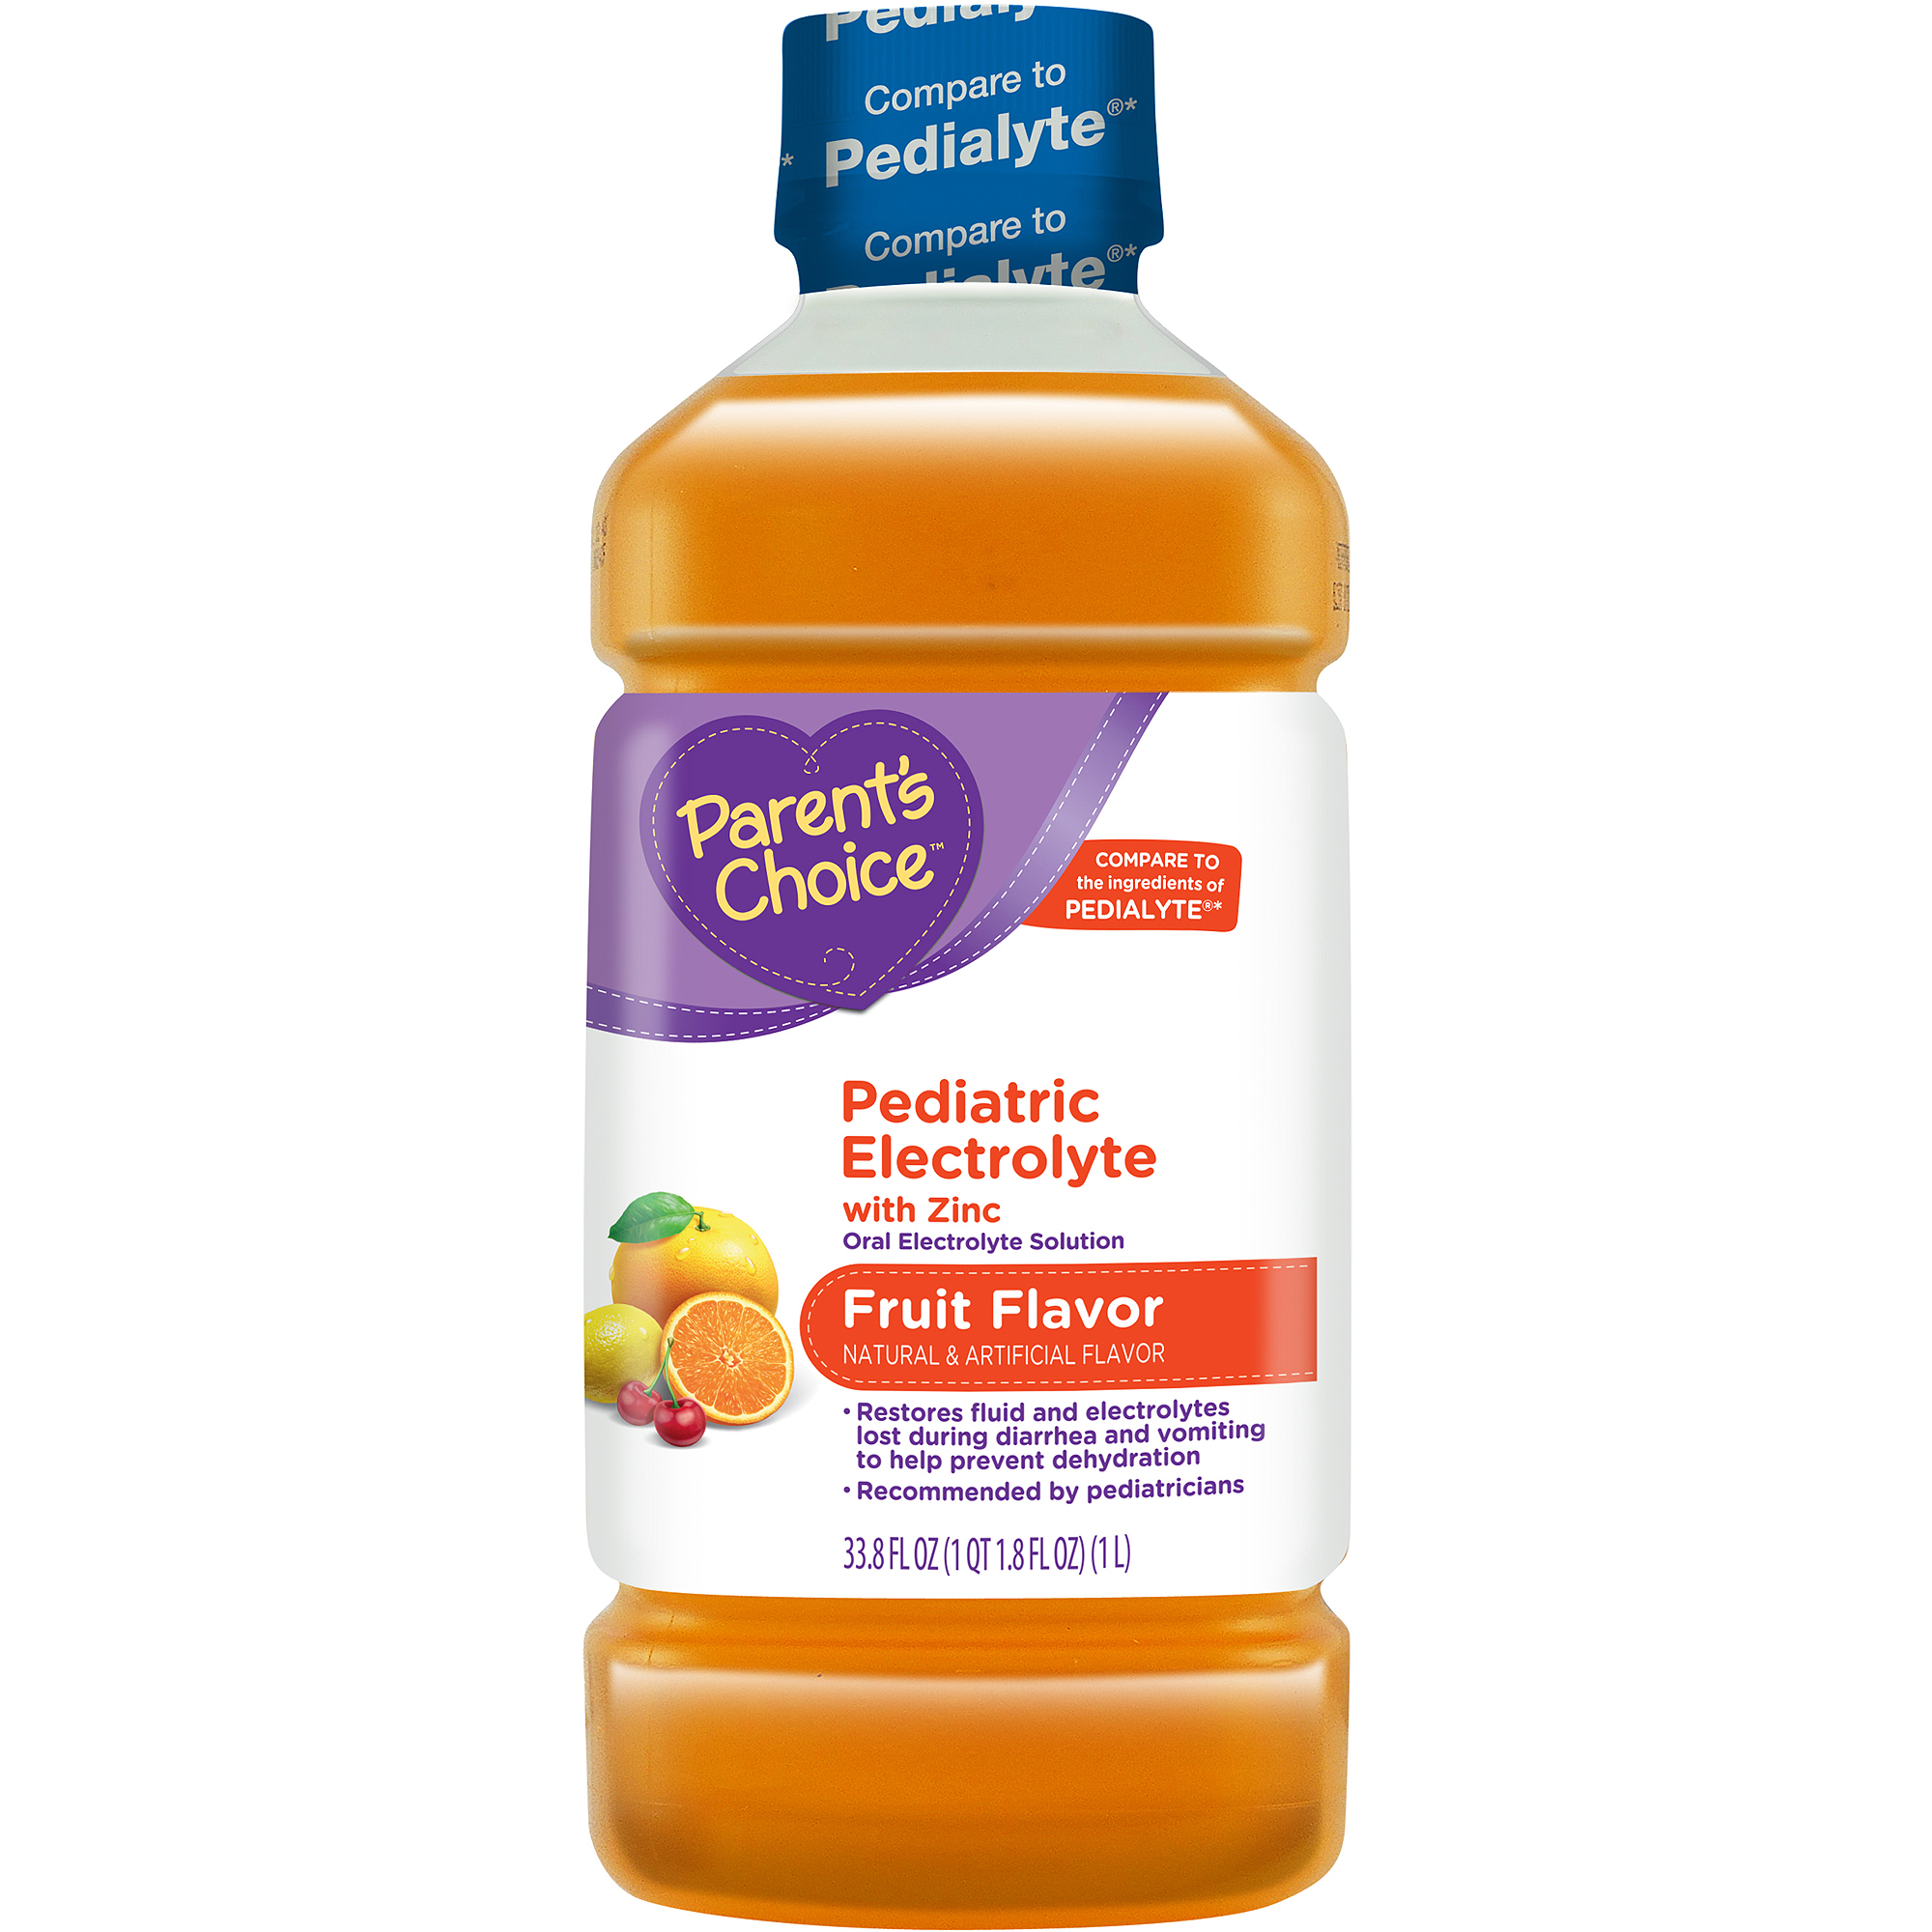 Parent's Choice - Pediatric Electrolyte Drink, Fruit Flavored, 1 liter